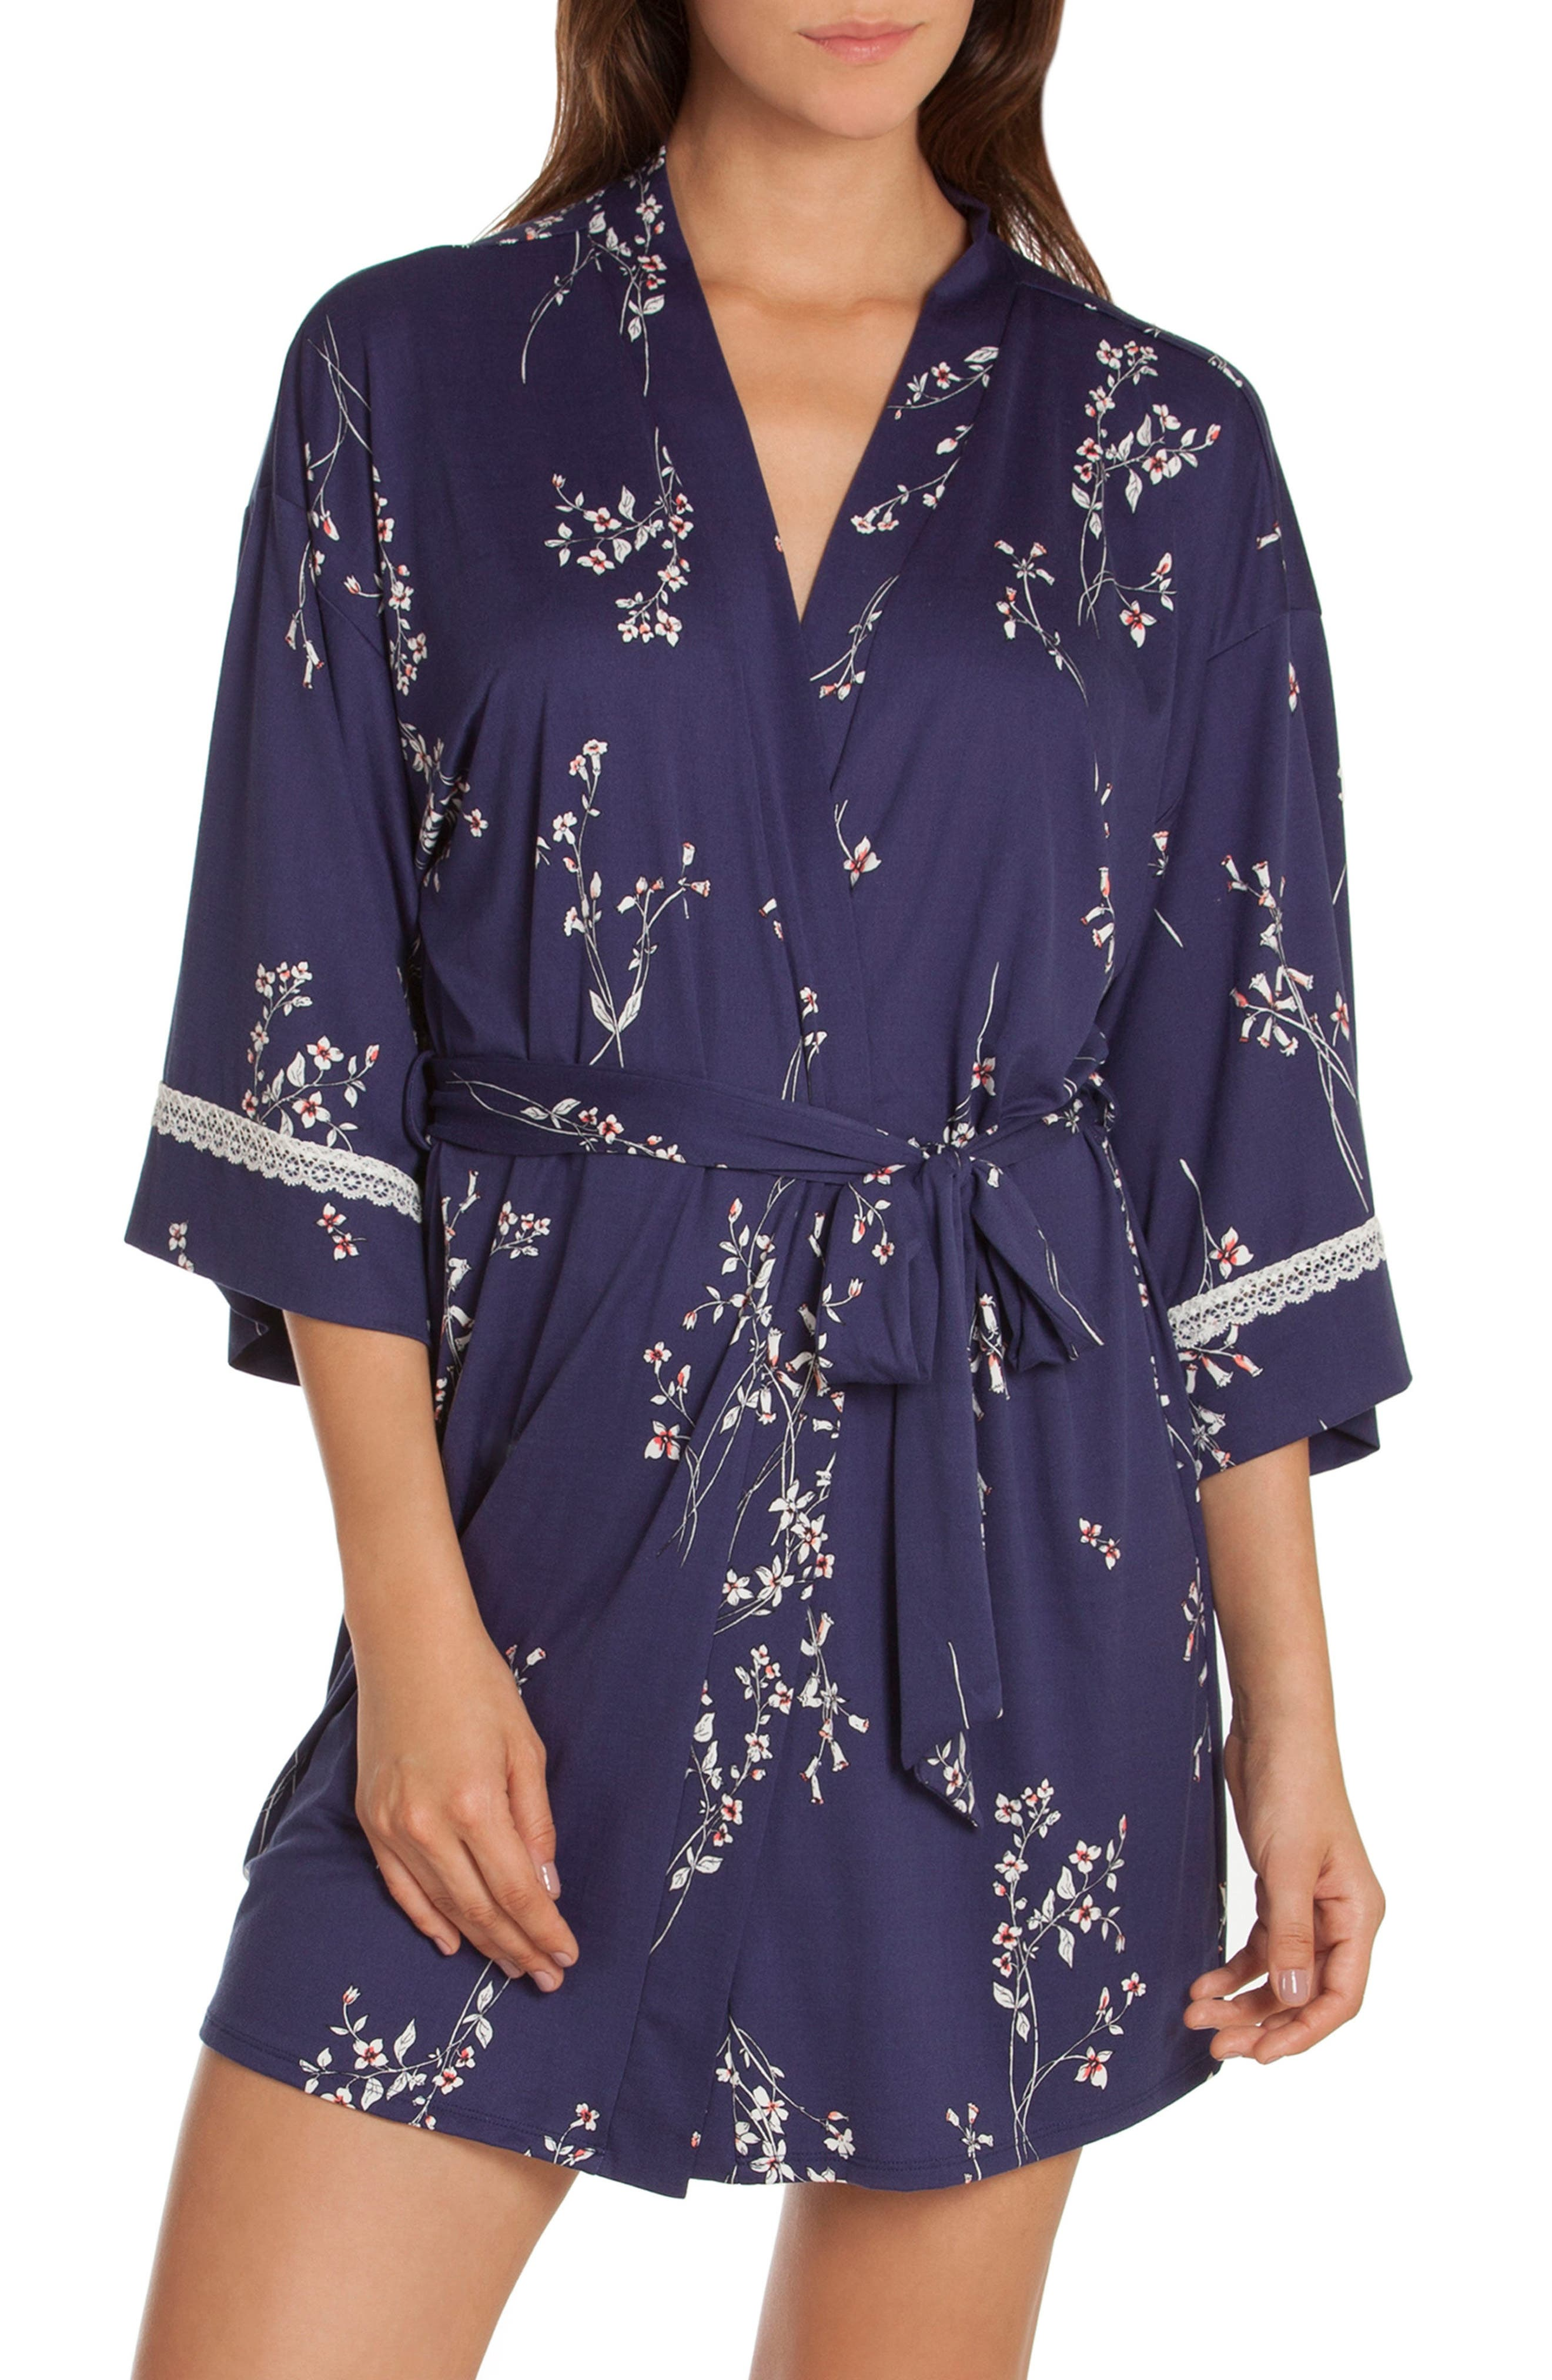 In Bloom by Jonquil Floral Print Robe